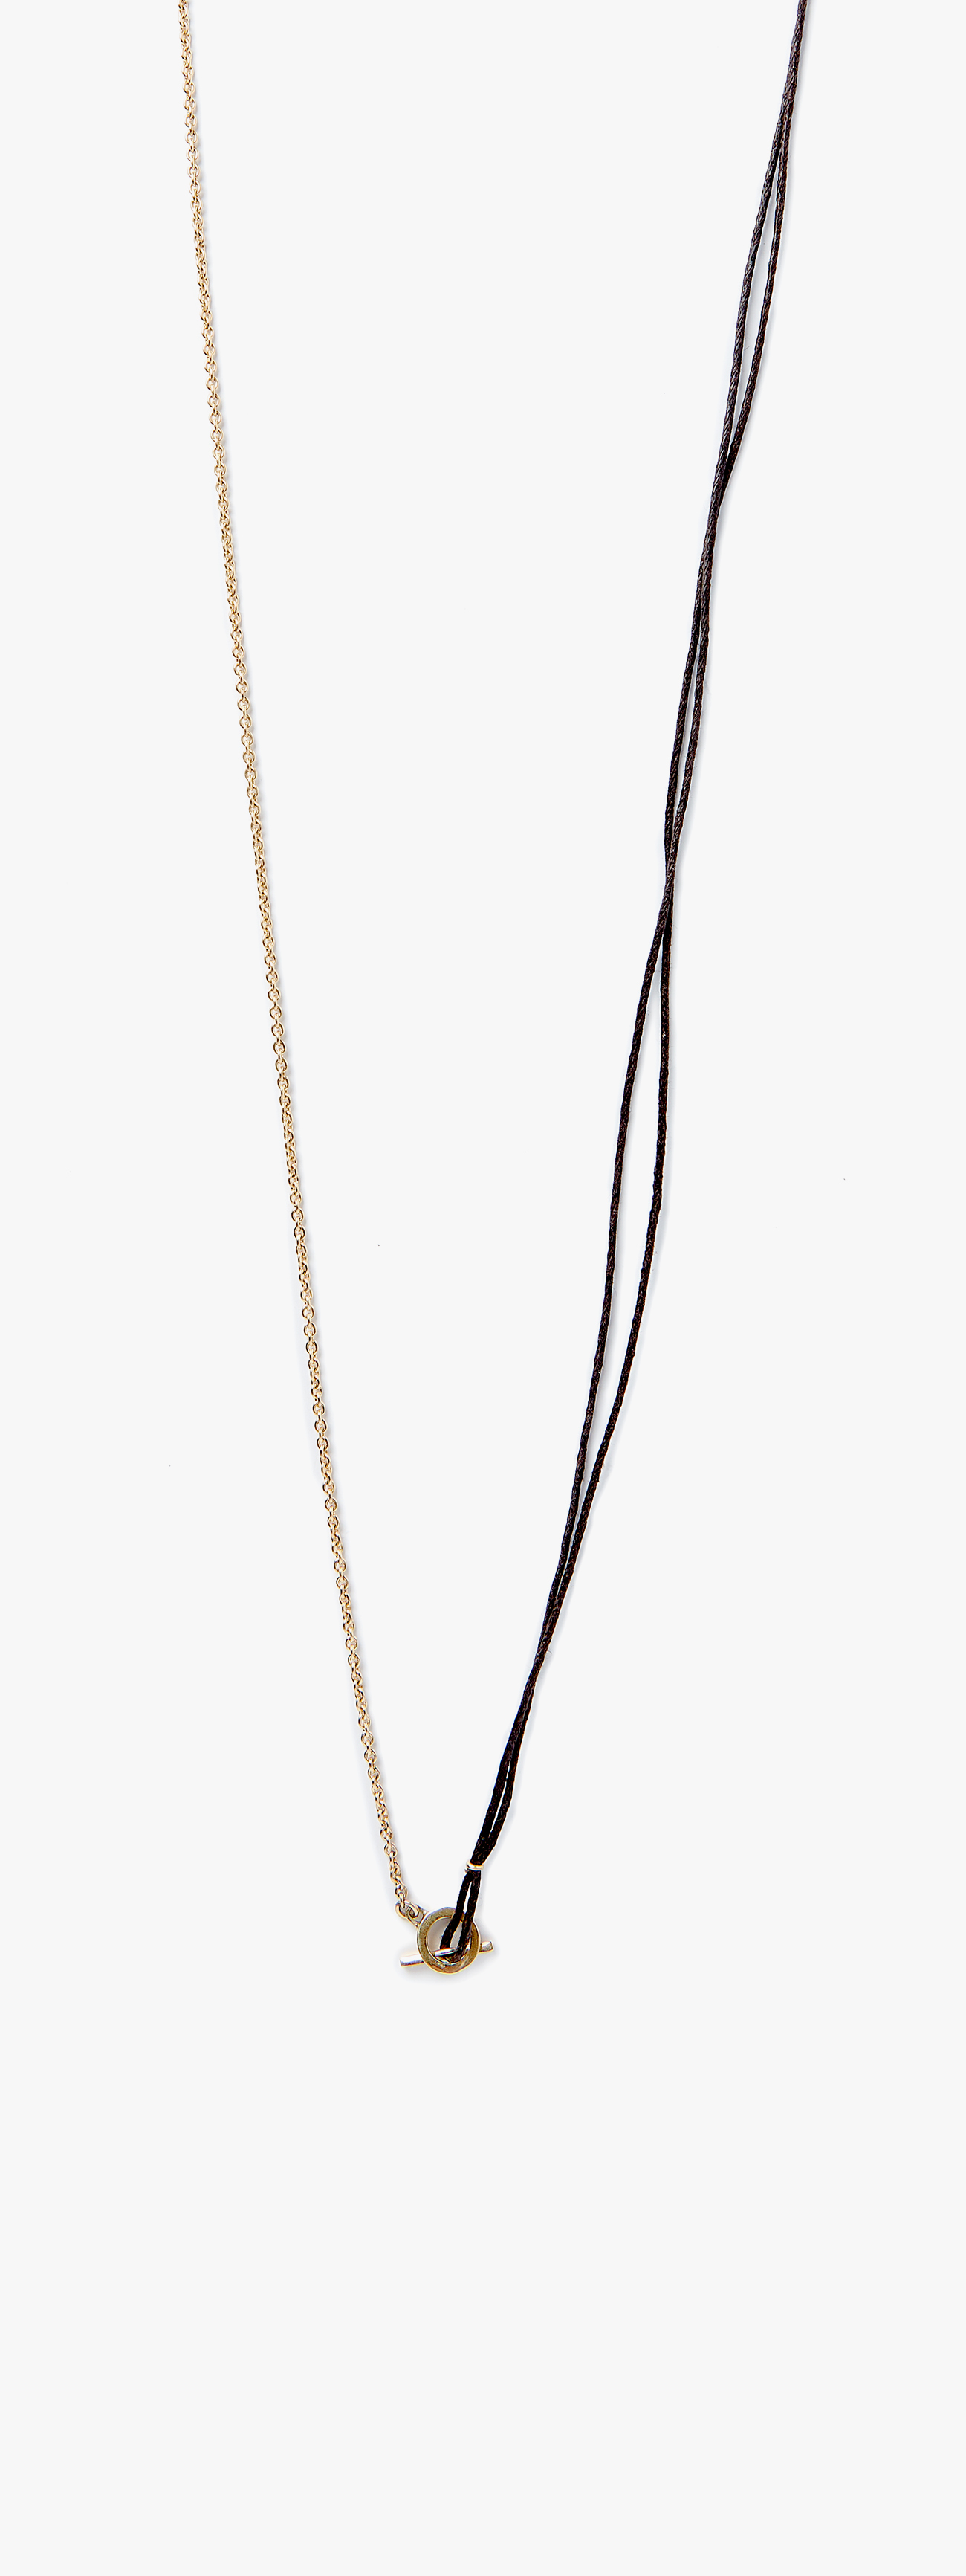 Image of 18k Yellow Gold Cable to Waxed Cotton Cord w/ Toggle Necklace